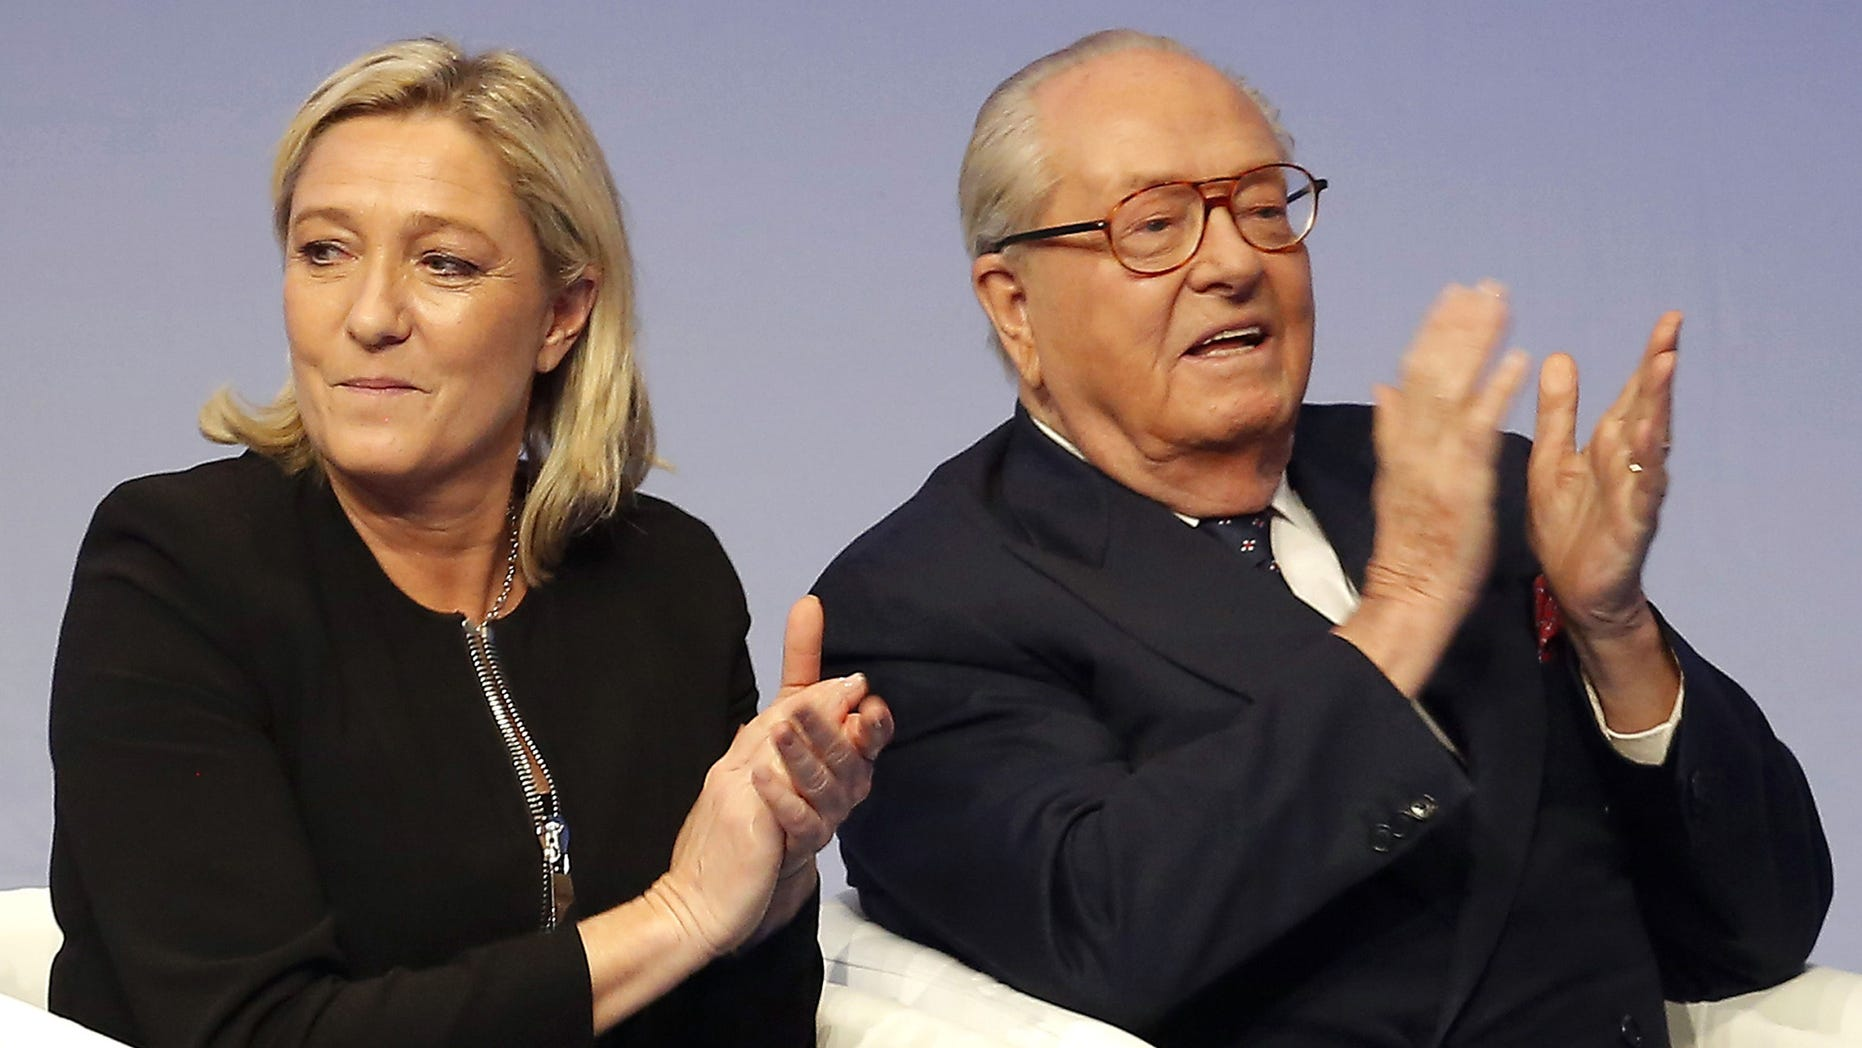 Saturday Nov. 29, 2014: French far-right Front National leader Marine Le Pen and her father Jean-Marie Le Pen applaud in Lyon, central France.